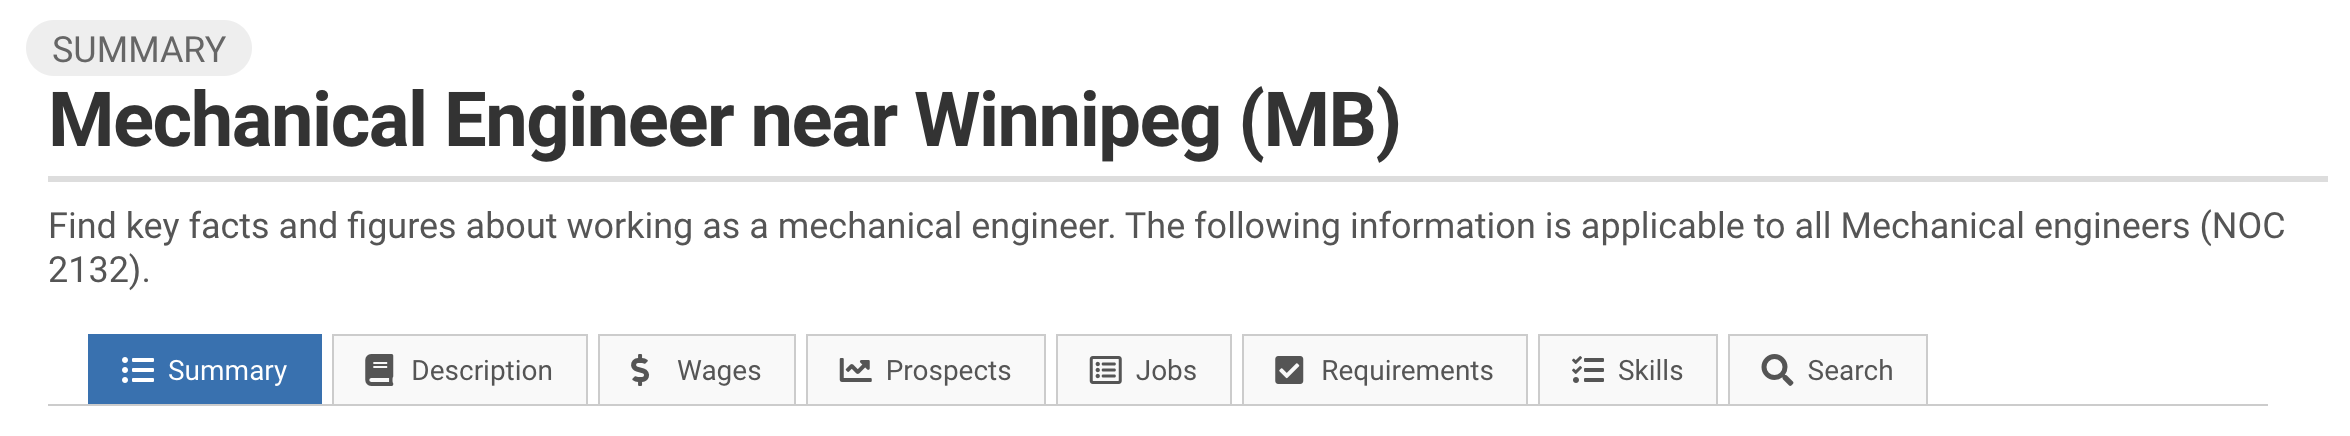 Image showing how to see StatCan trends for Mechanical Engineers near Winnipeg or other cities